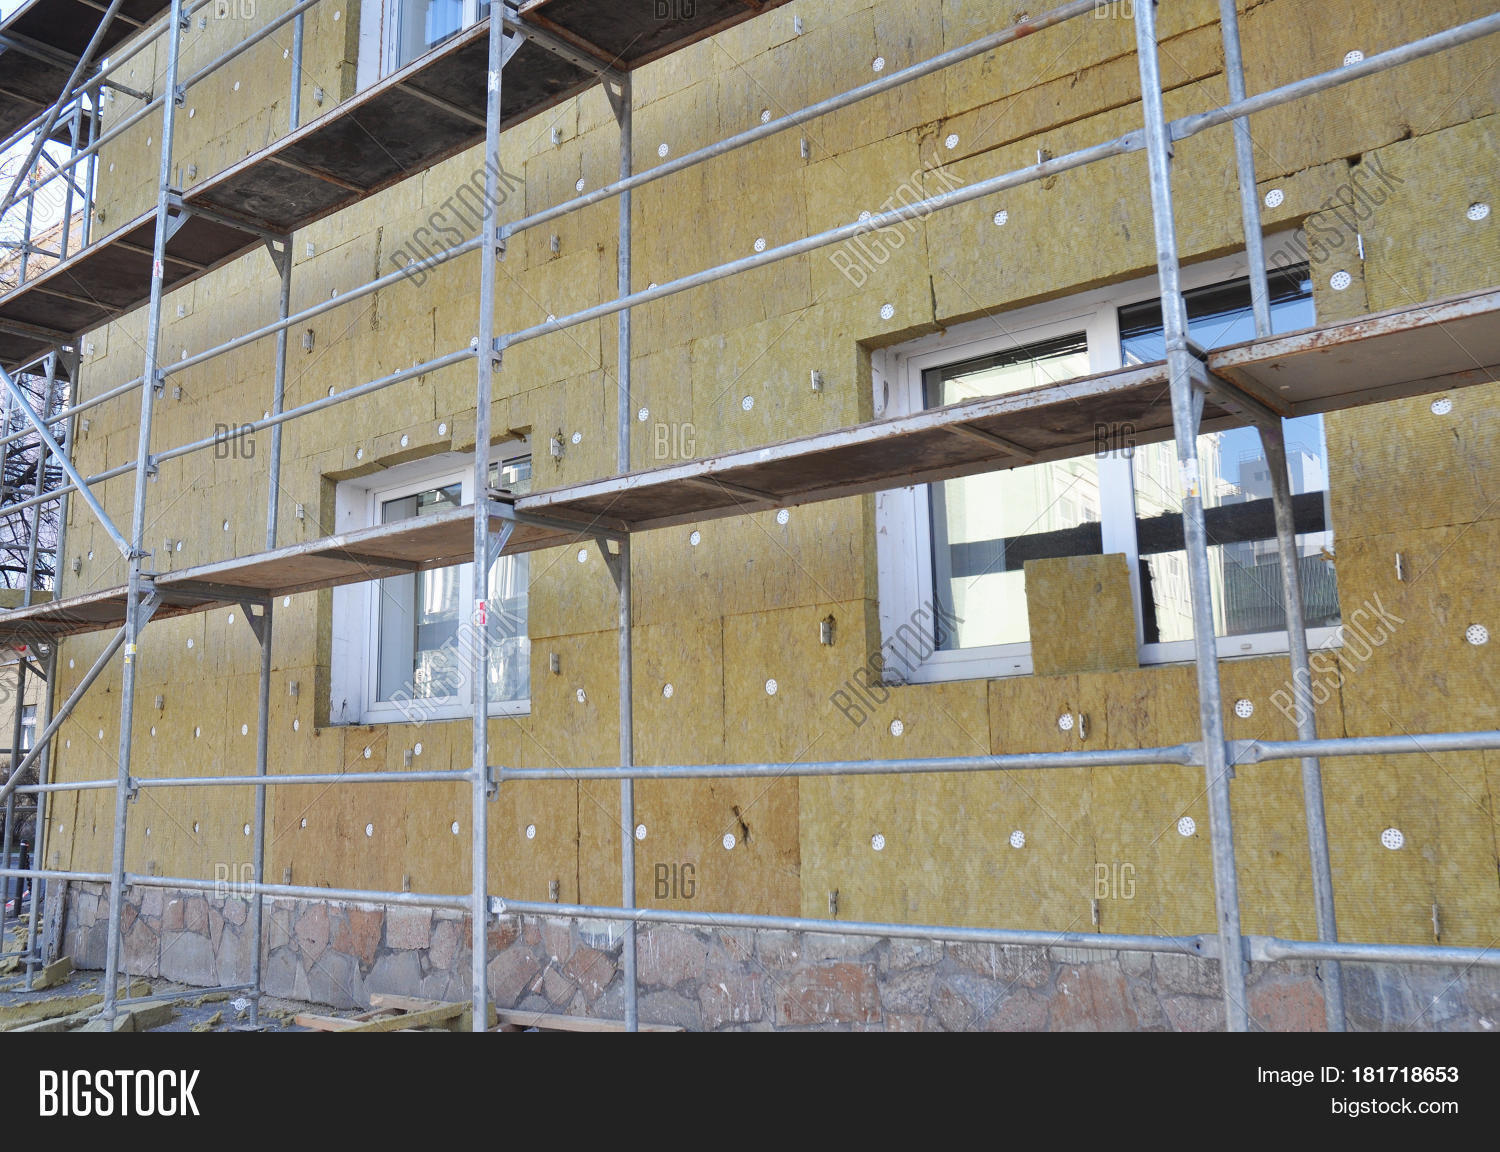 External wall insulation solid image photo bigstock for Wool house insulation